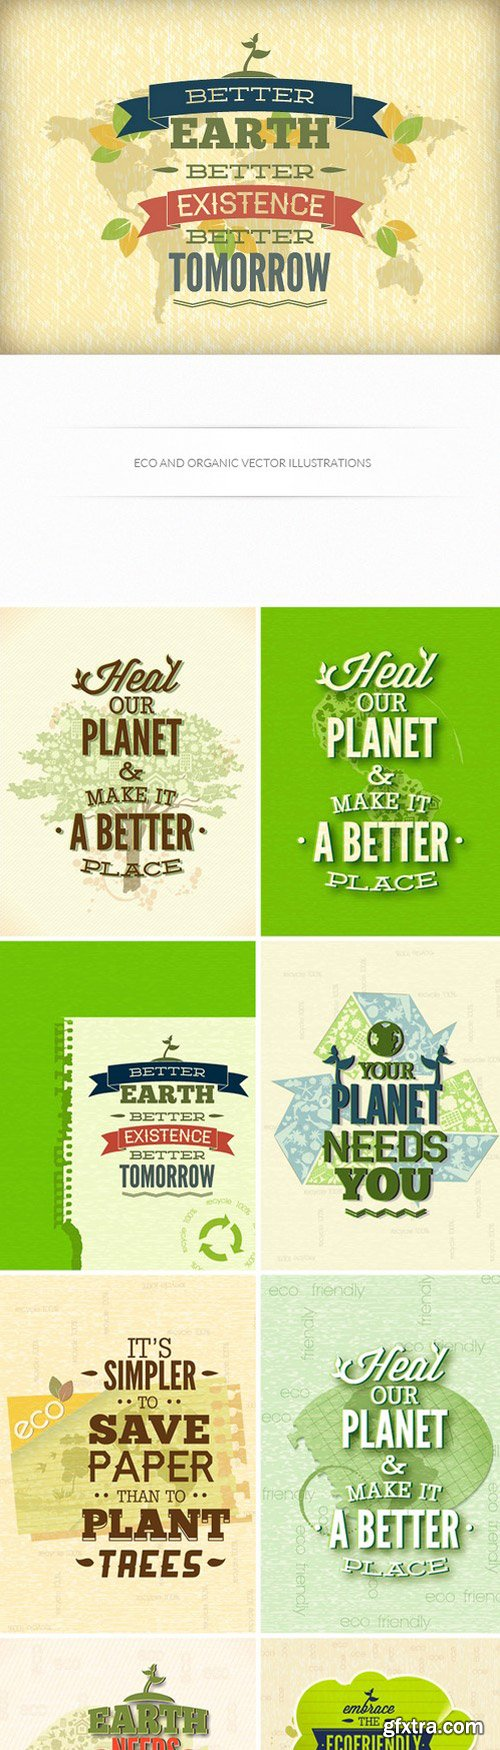 Eco And Organic Vector Illustrations